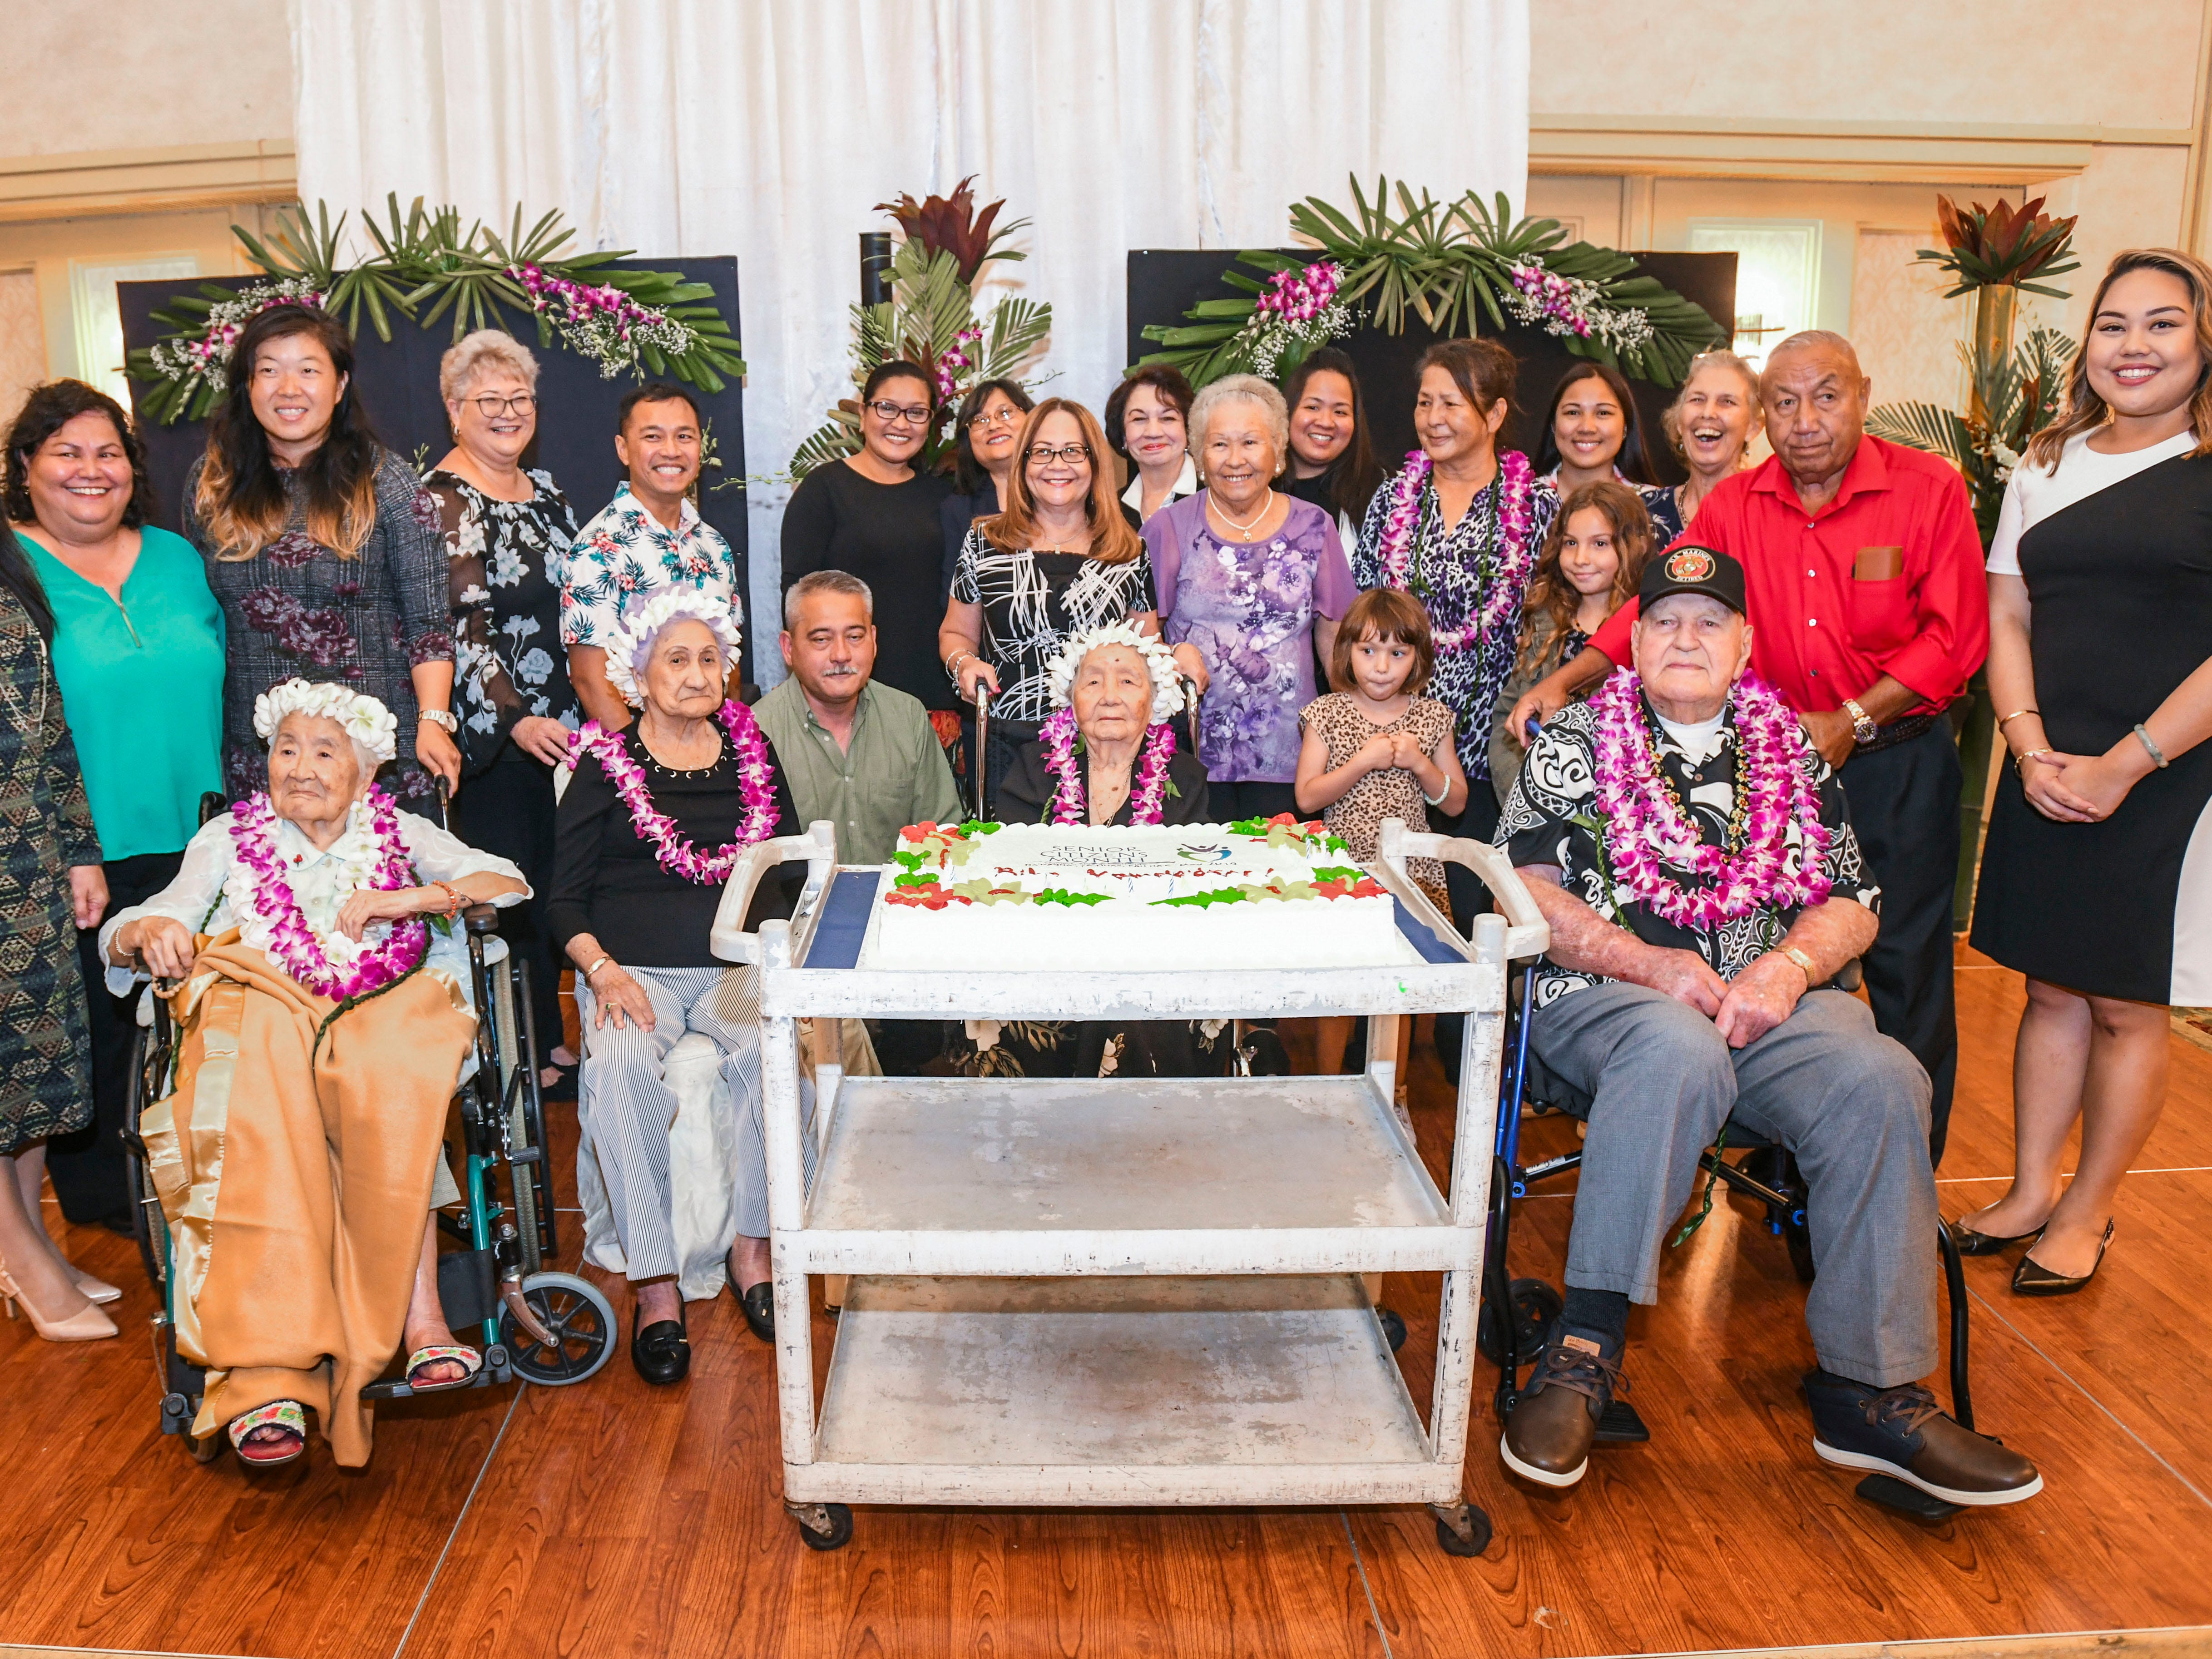 Members of the island's centenarian population are celebrated by family, friends and other supporters, during a gathering hosted by the Department of Public Health and Social Services, in conjunction with Senior Citizens Month at the Pacific Star Resort & Spa in Tumon on Thursday, May 9, 2019. Centenarians, wearing floral leis, seated left to right; Hae Im Yu Shim, 102; Yuk Lan Moylan, 100; Josephina Dorotea Yamanaka Blas, 103 and Julian Bryson Wilgus, 100.